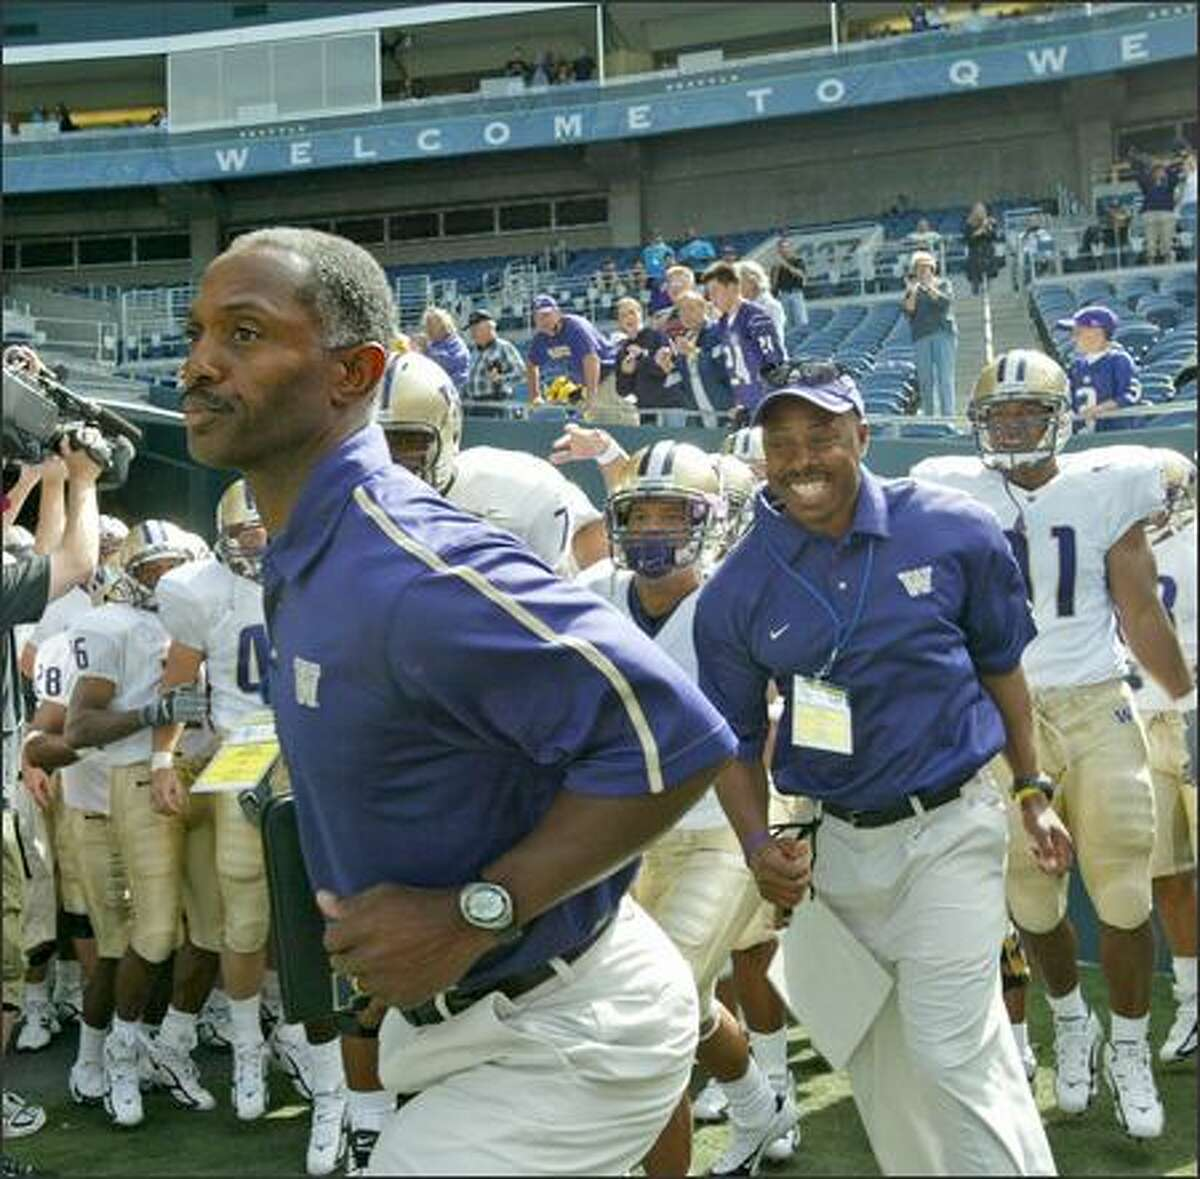 UW head coach Tyrone Willingham leads the Huskies onto the field for his first game.